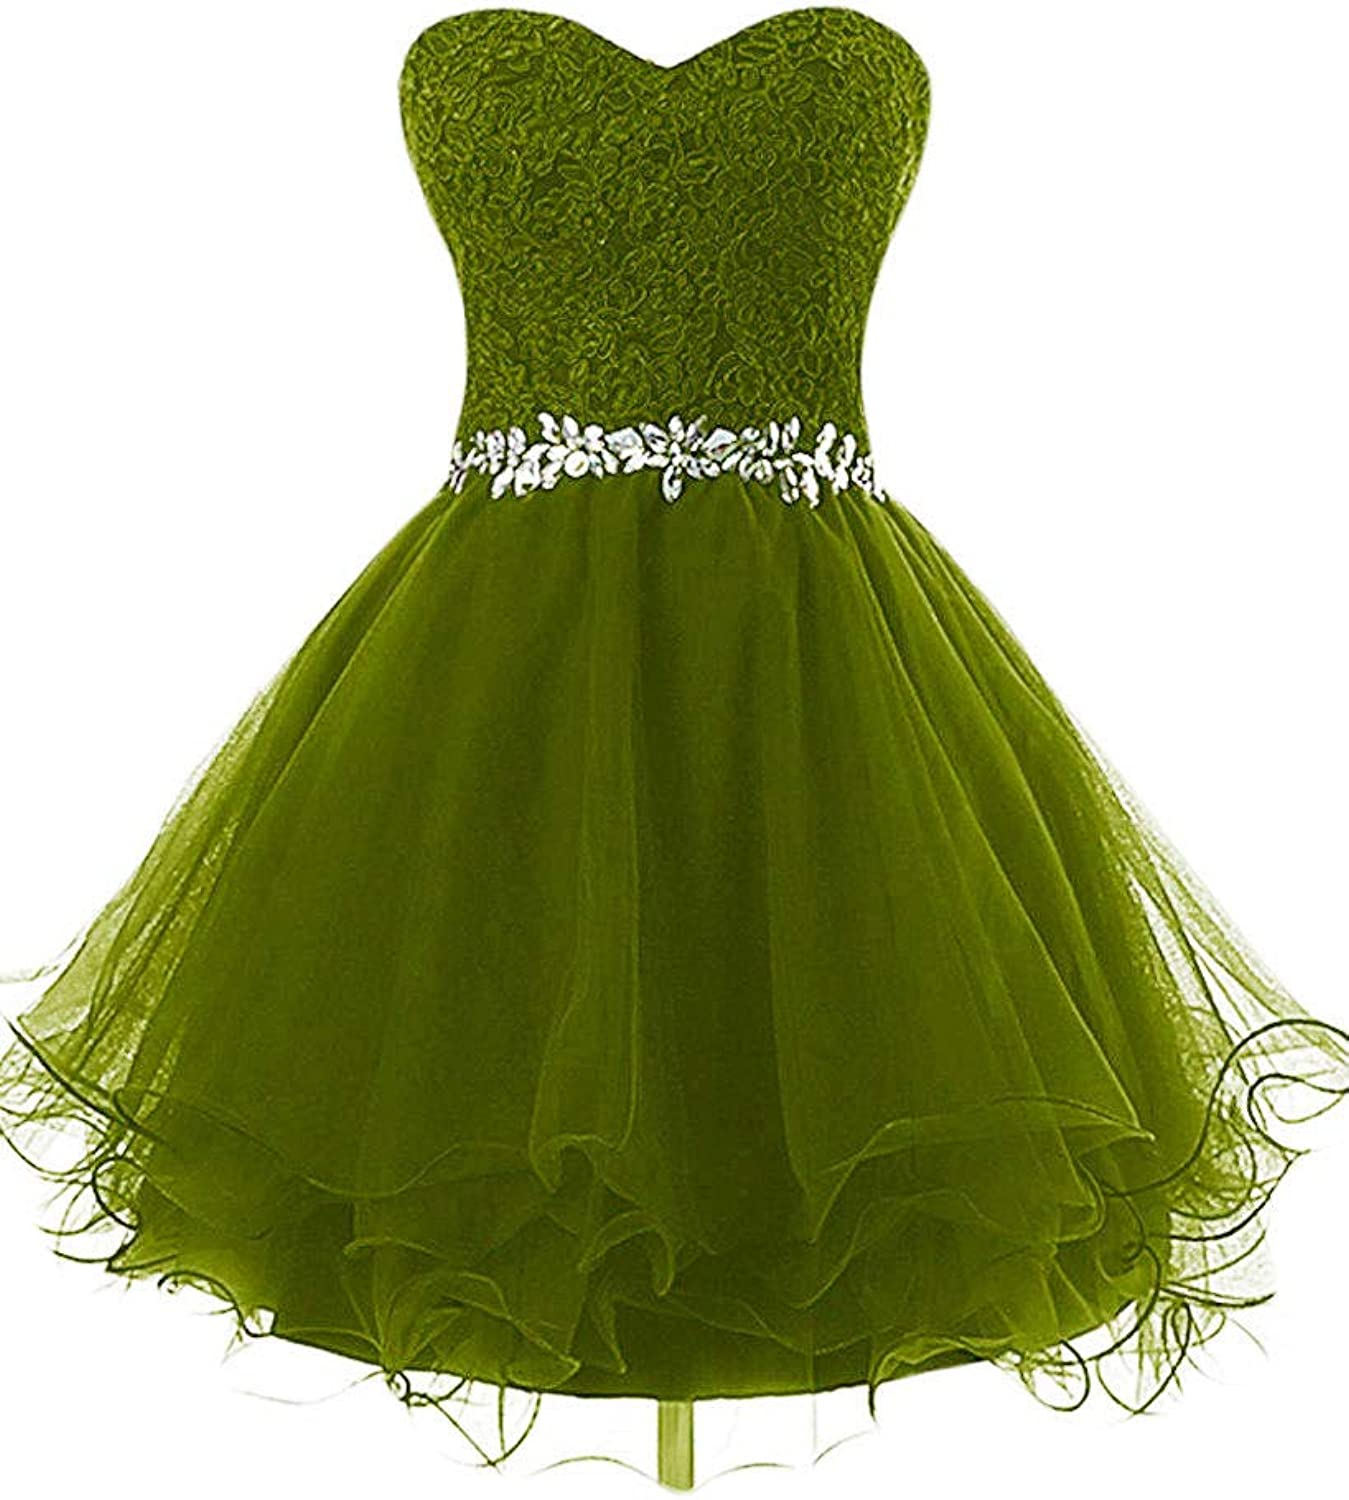 DINGZAN Gorgeous Lace and Tulle Gala Ball Bridesmaid Dresses Short